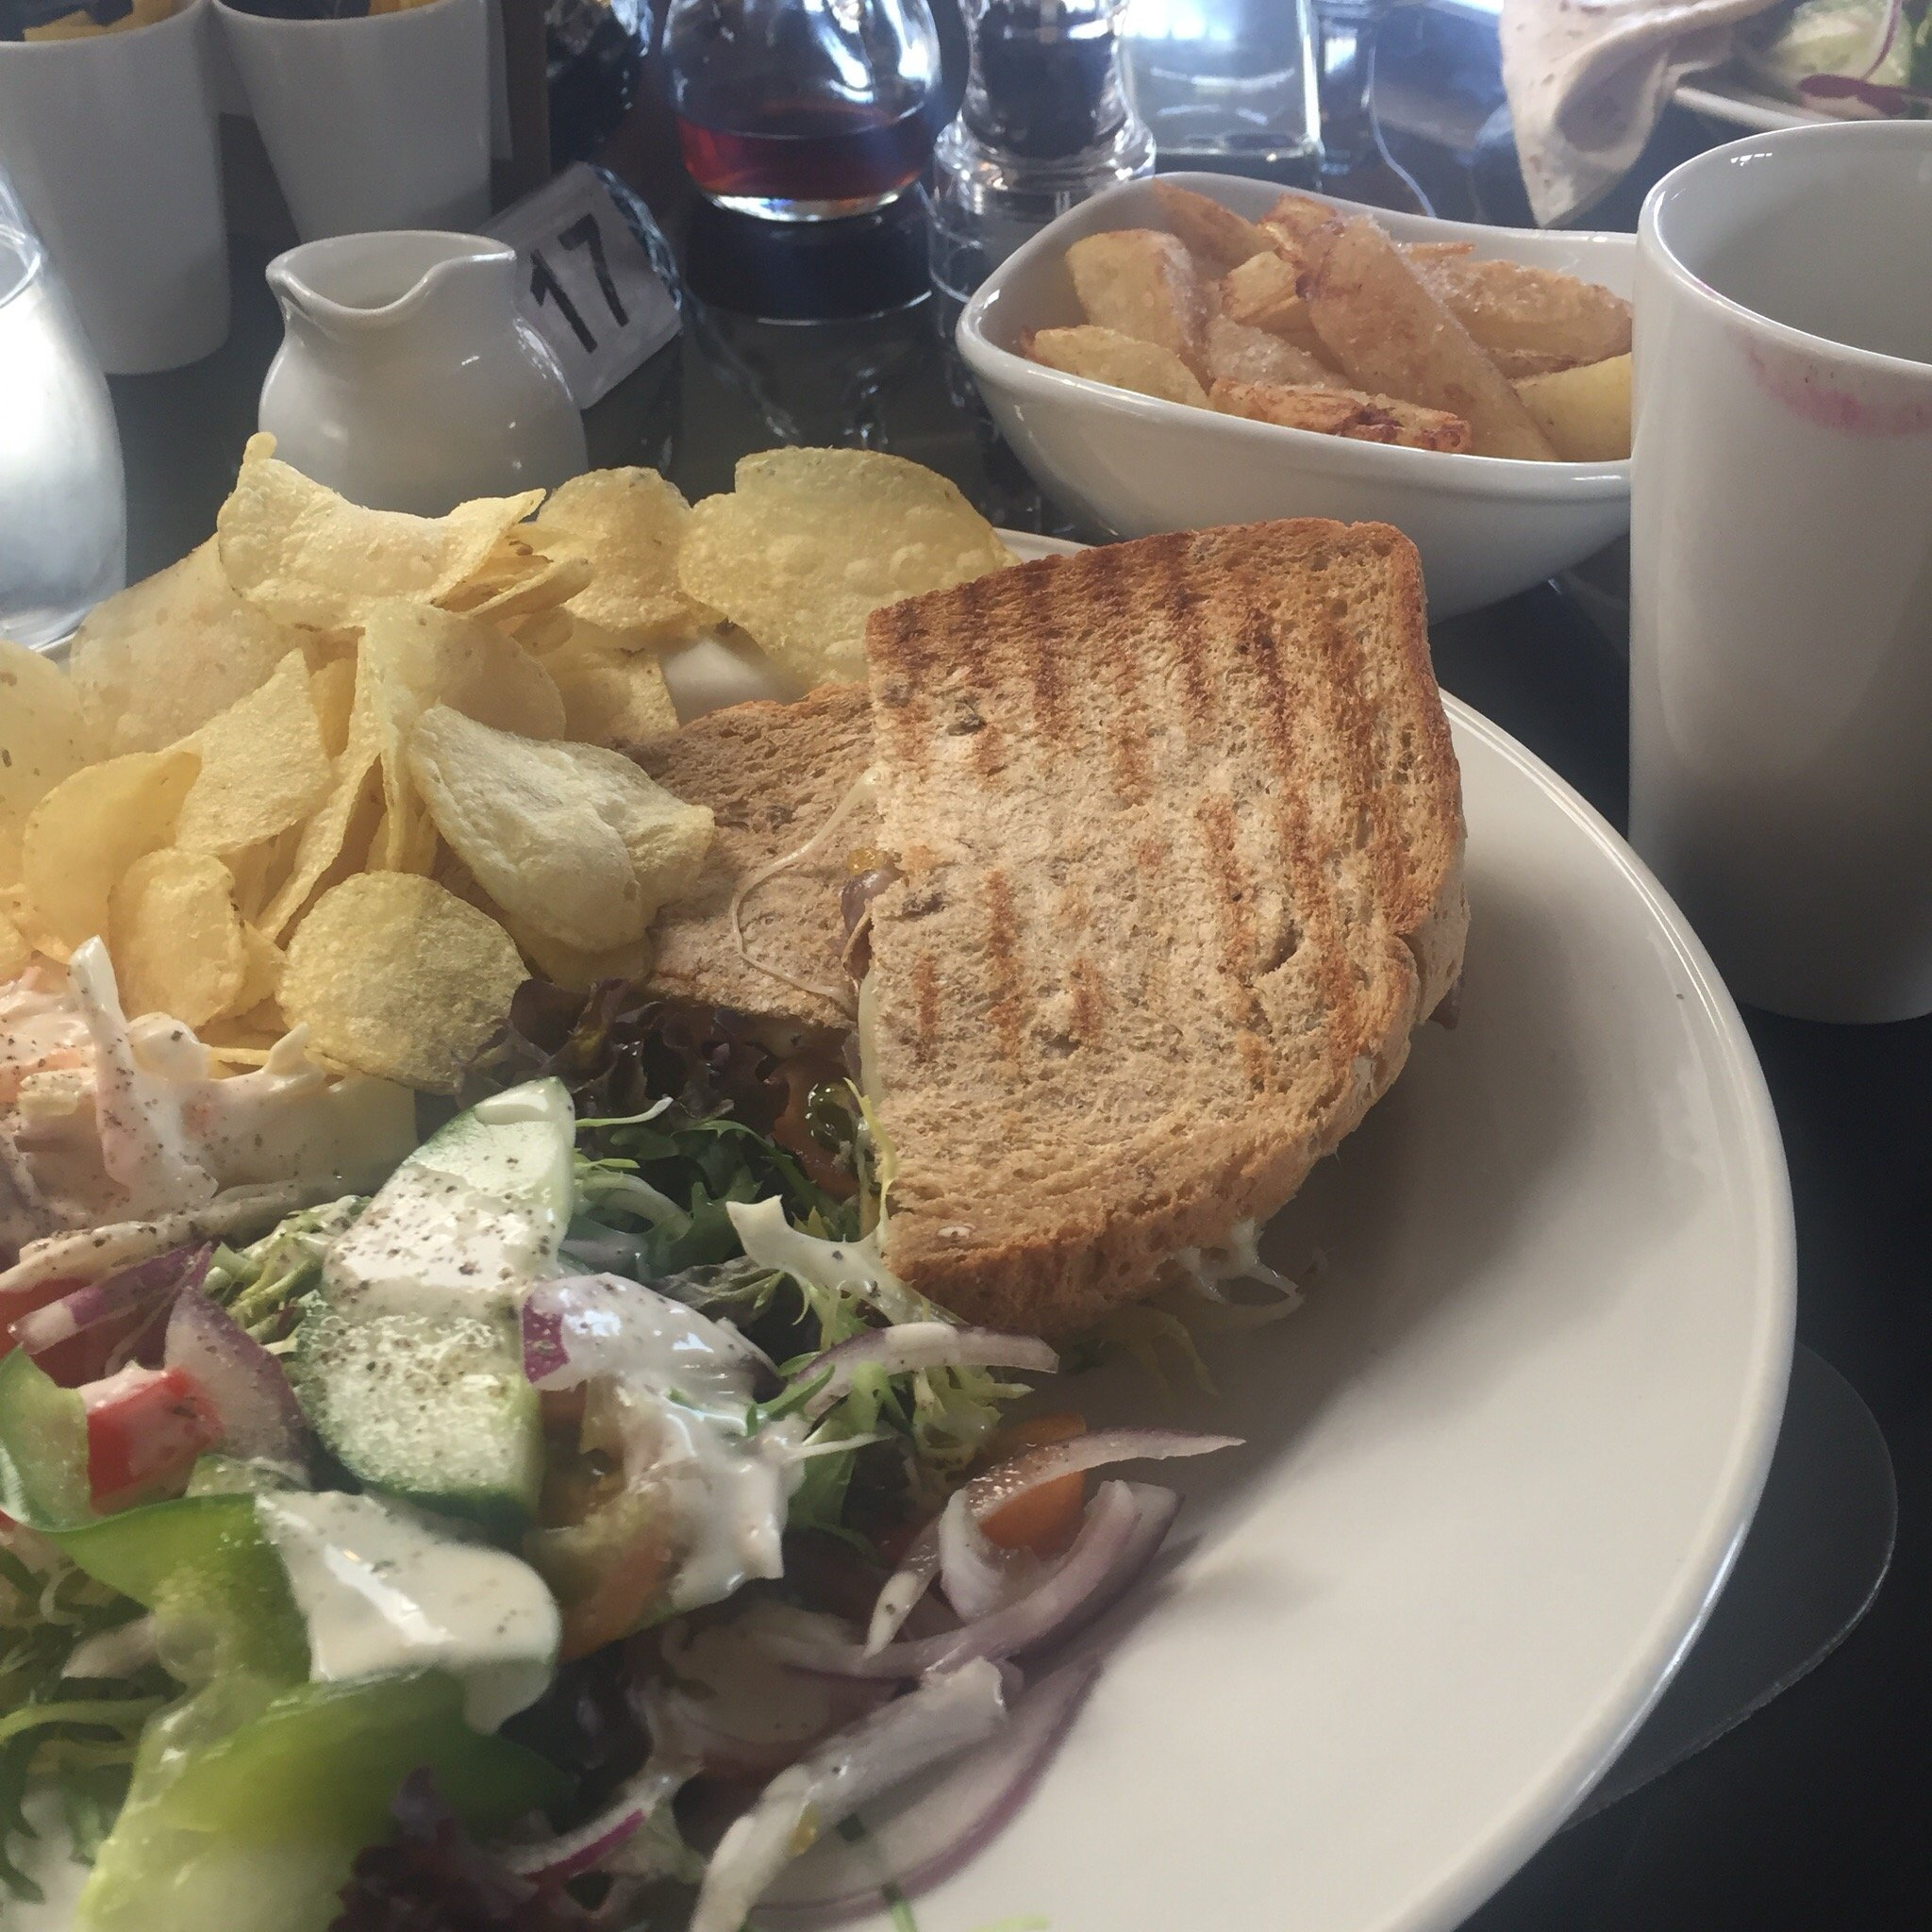 The Greenhouse Restaurant at Lanchester Garden Centre | Lanchester Garden Centre, Bargate Bank, Lanchester DH7 0SS | +44 1207 521669